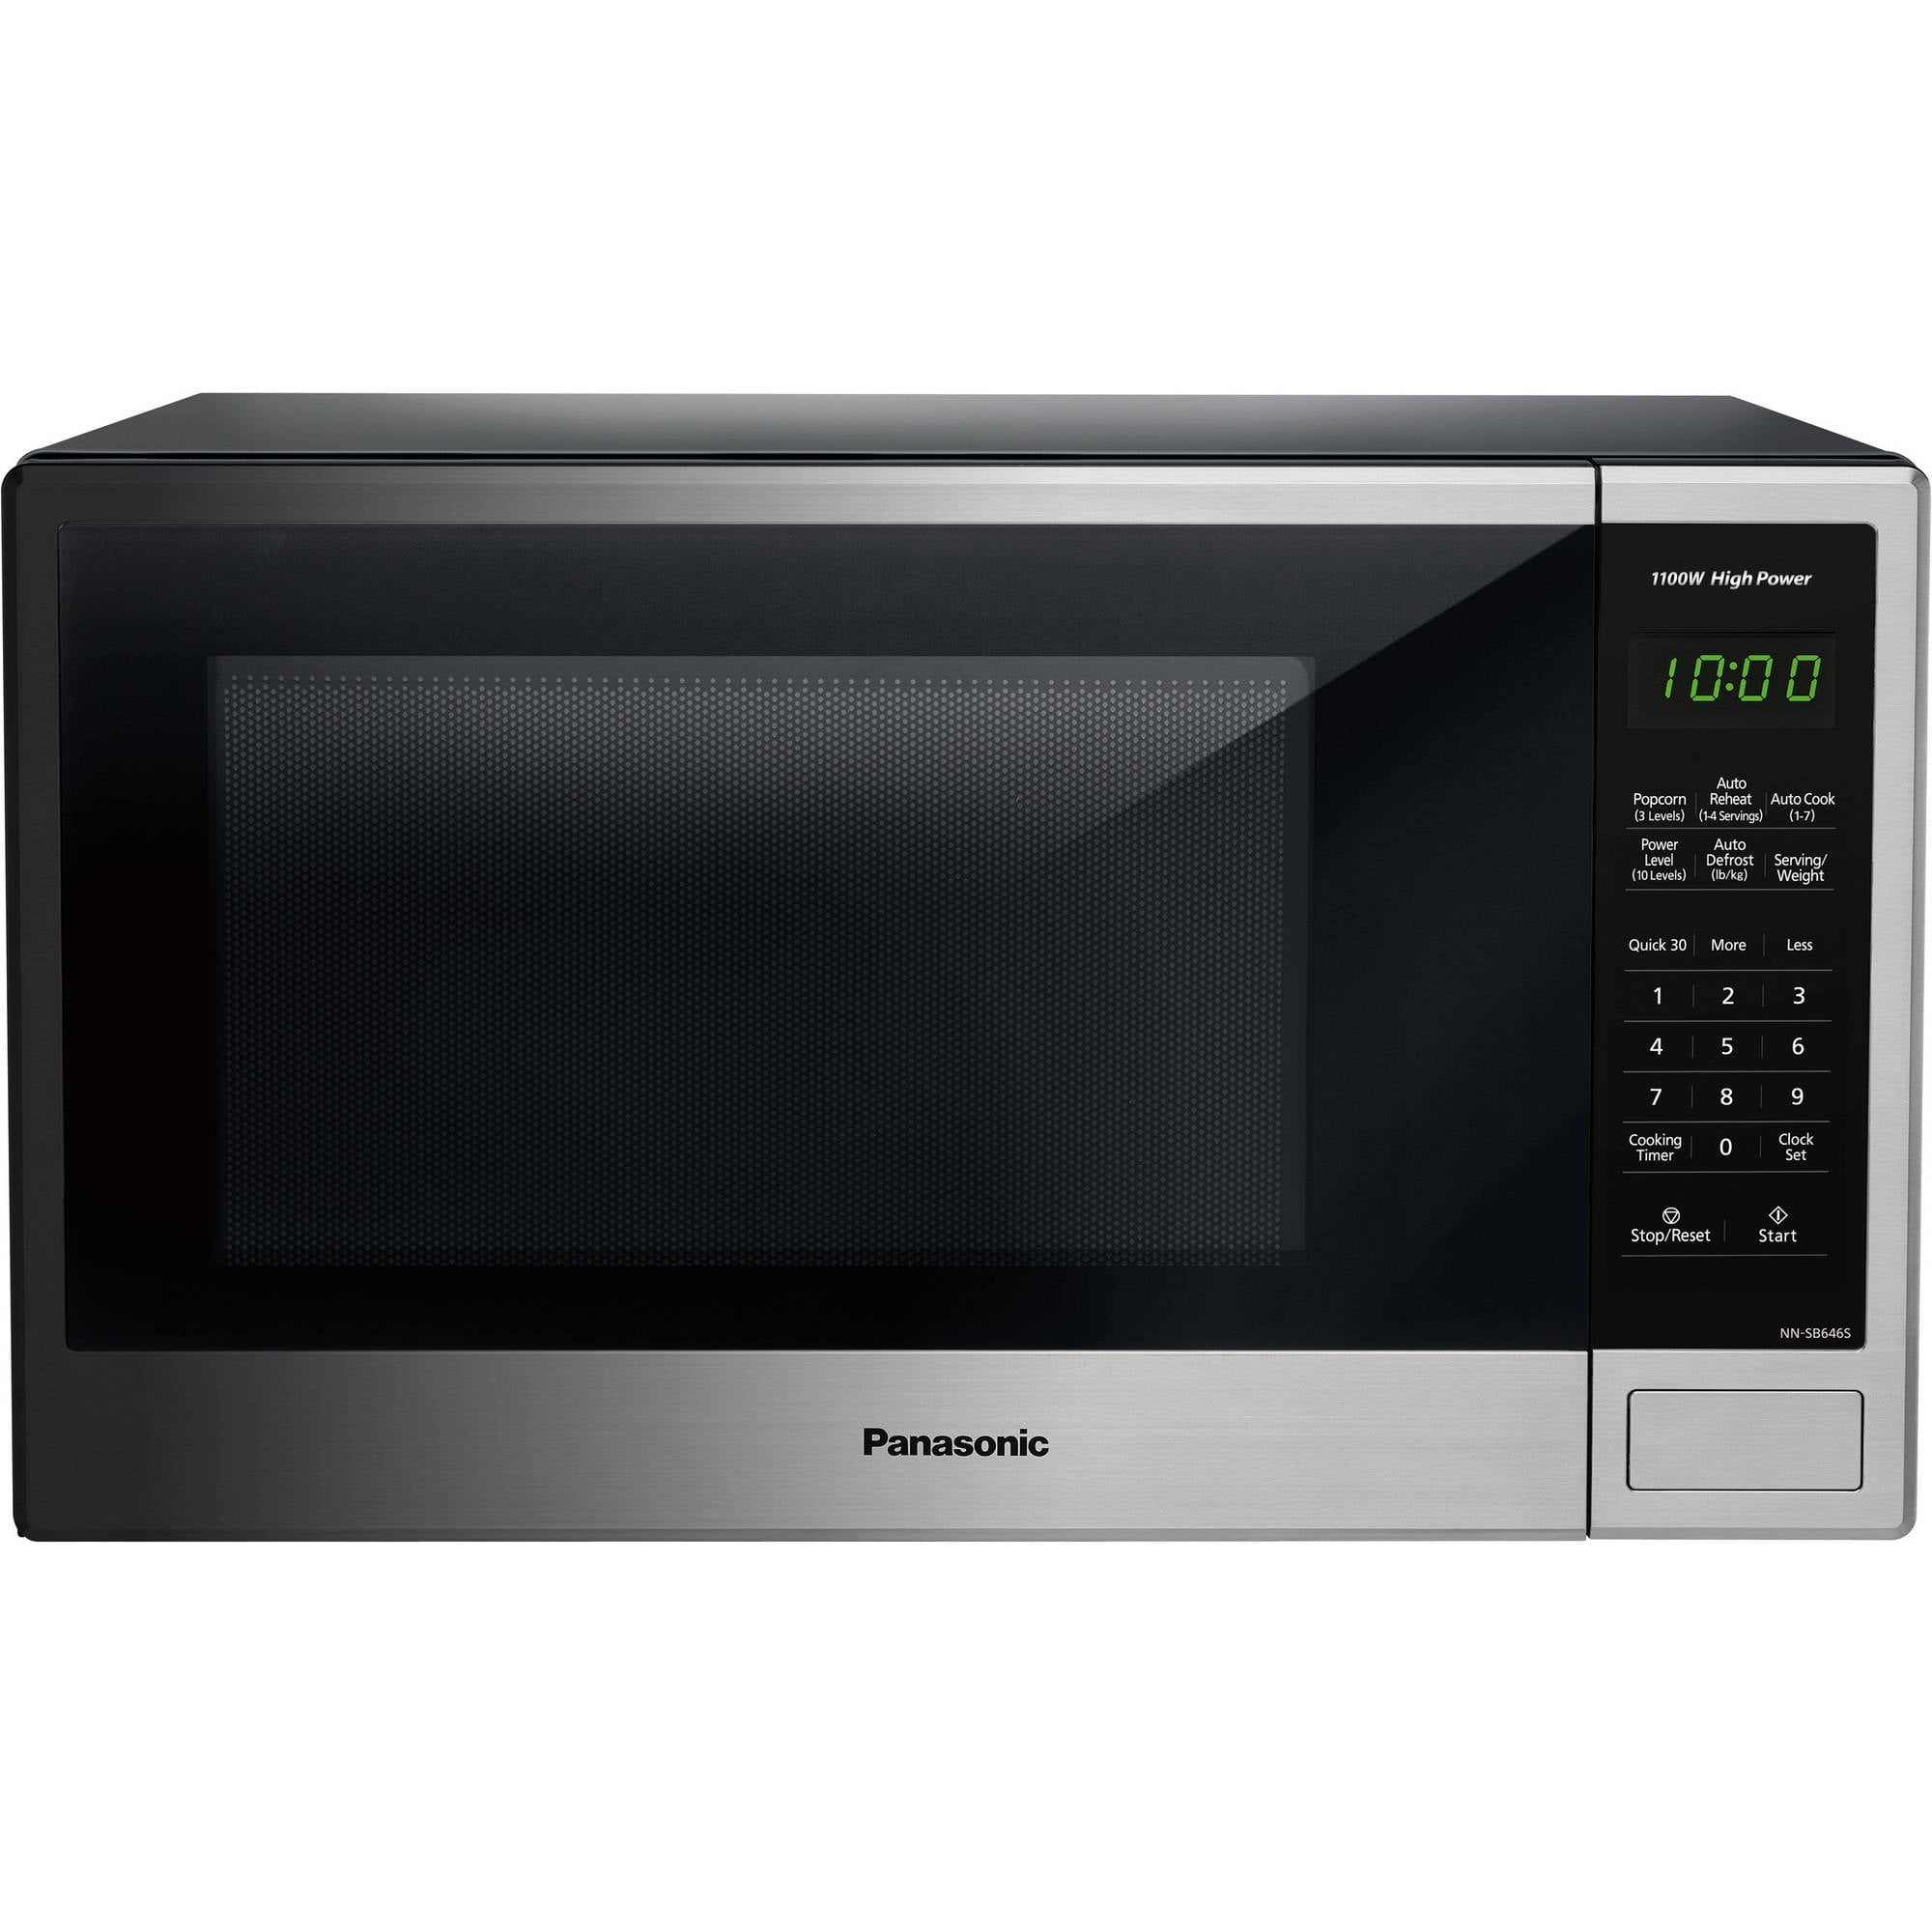 Panasonic 1 3 Cu Ft 1100w Countertop Stainless Steel